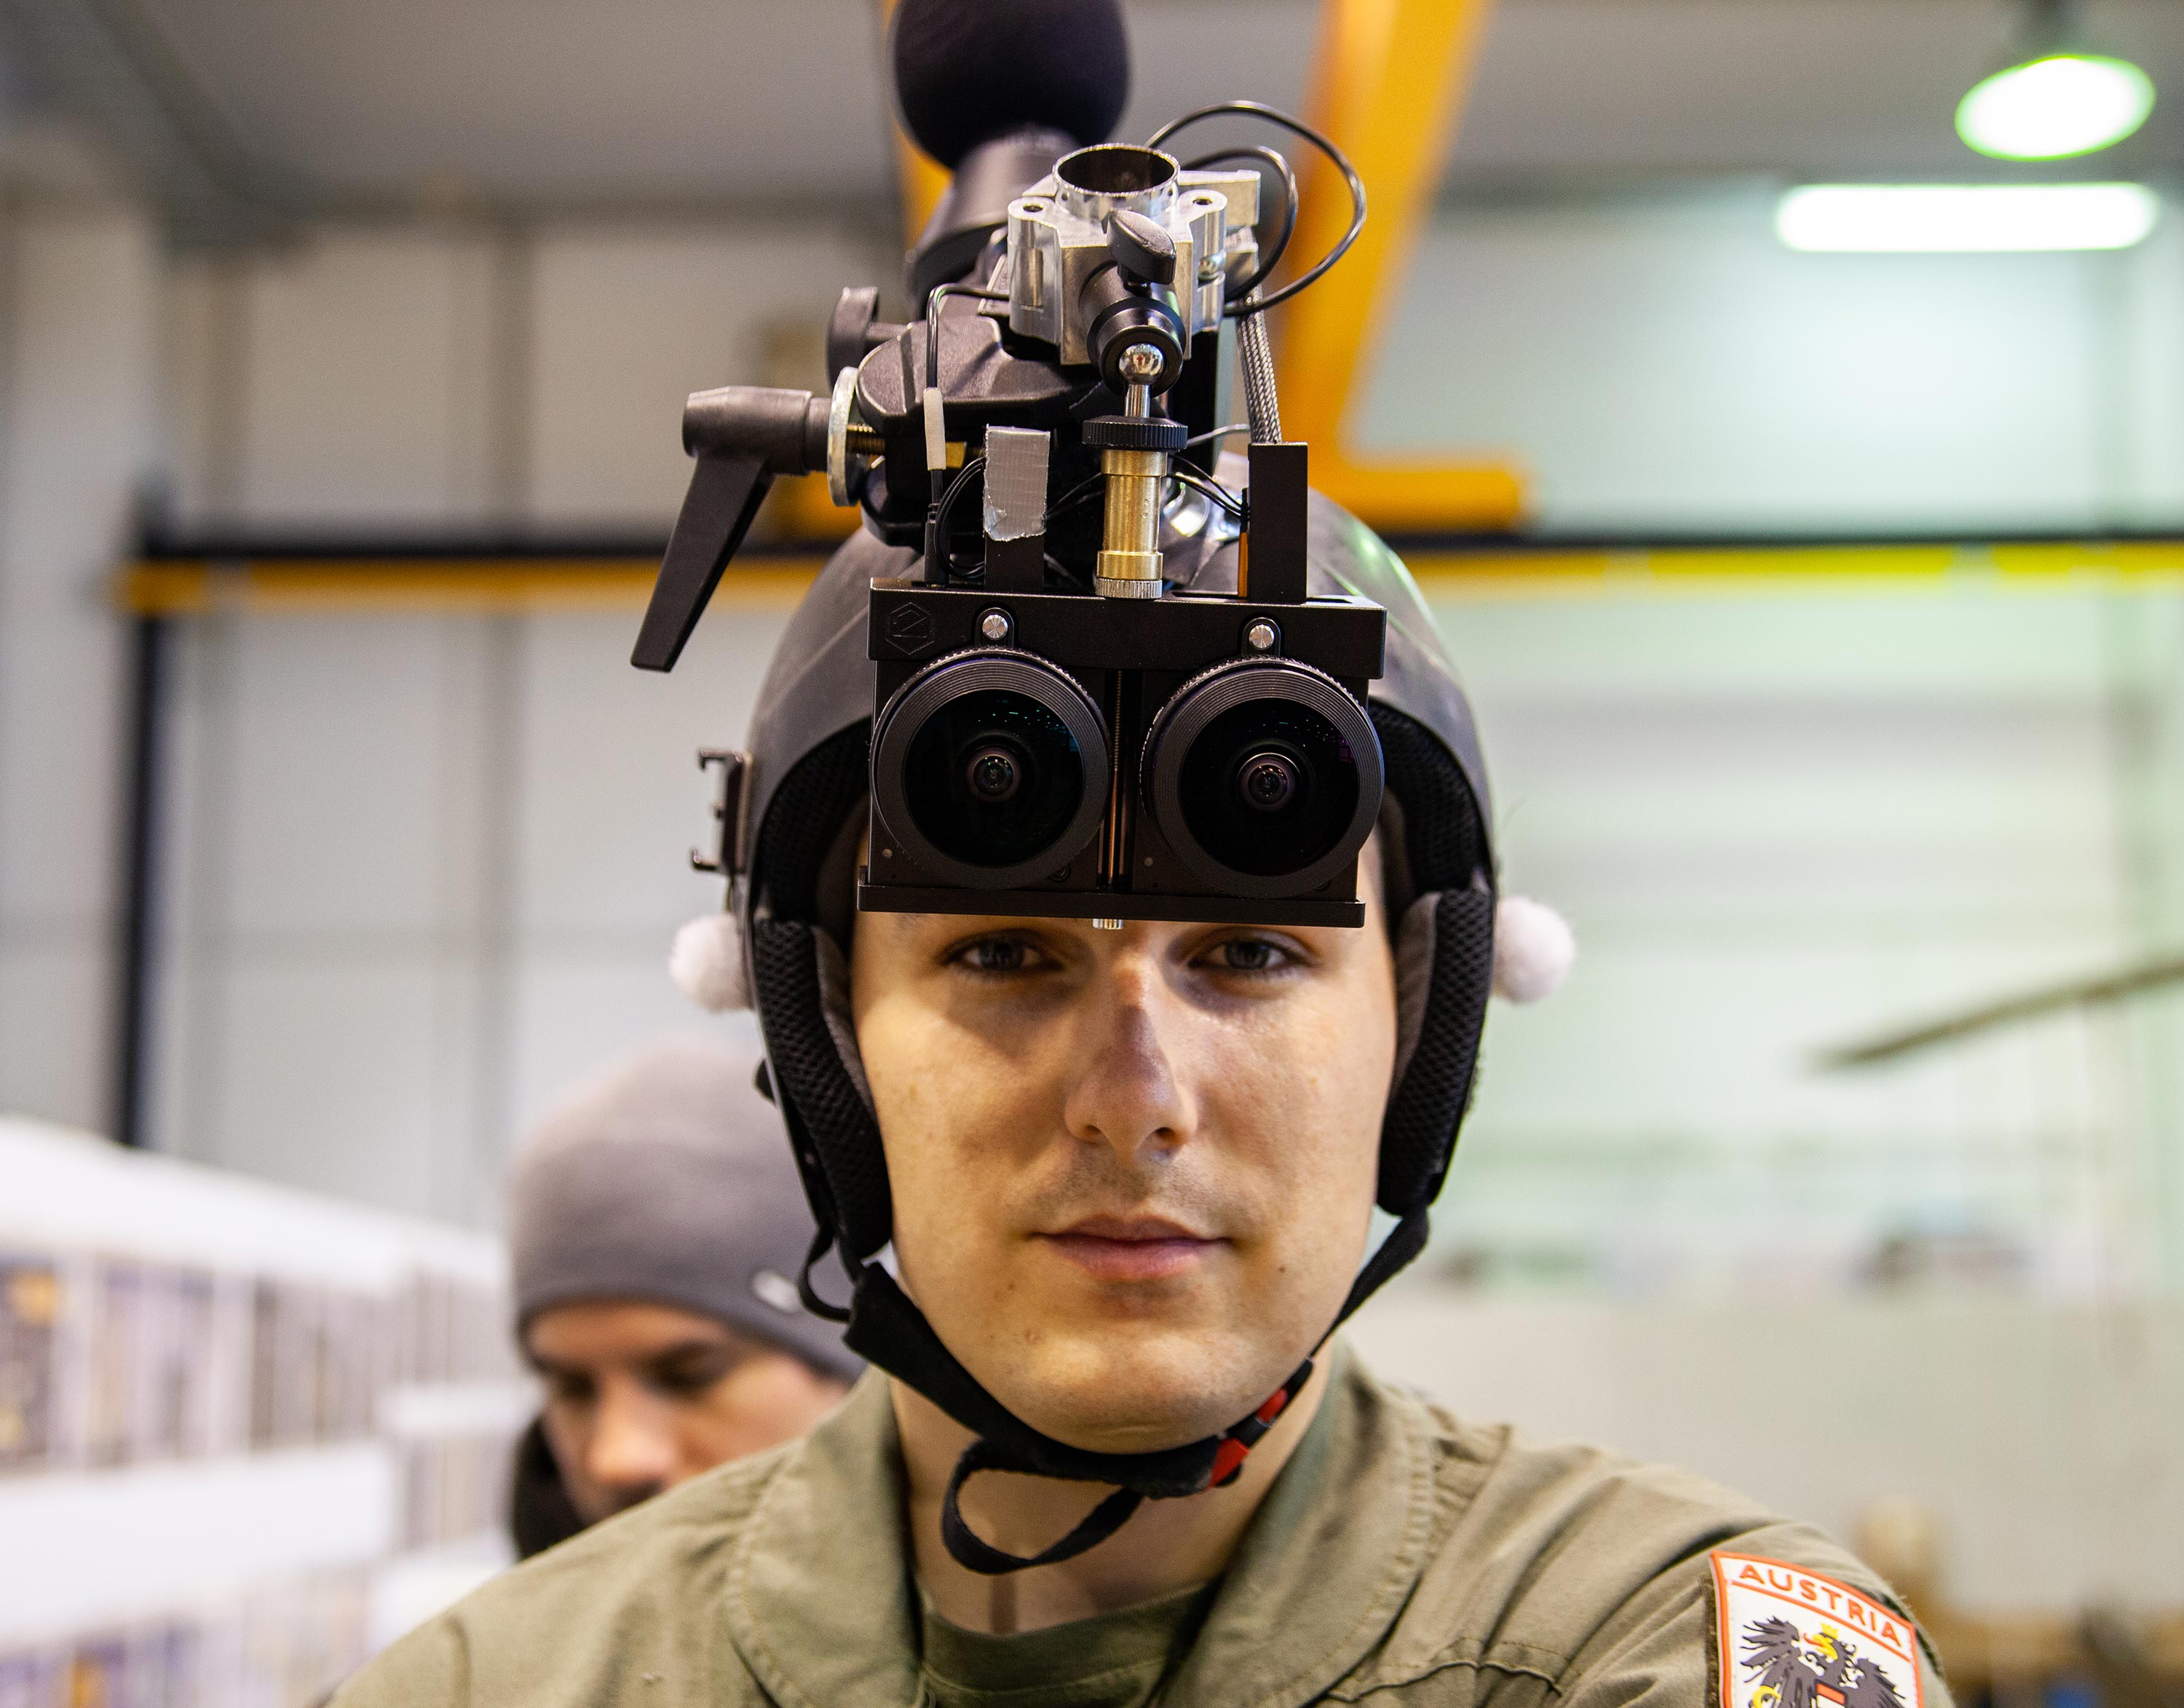 Military soldier wearing a custom 360 video rig mounted on a helmet